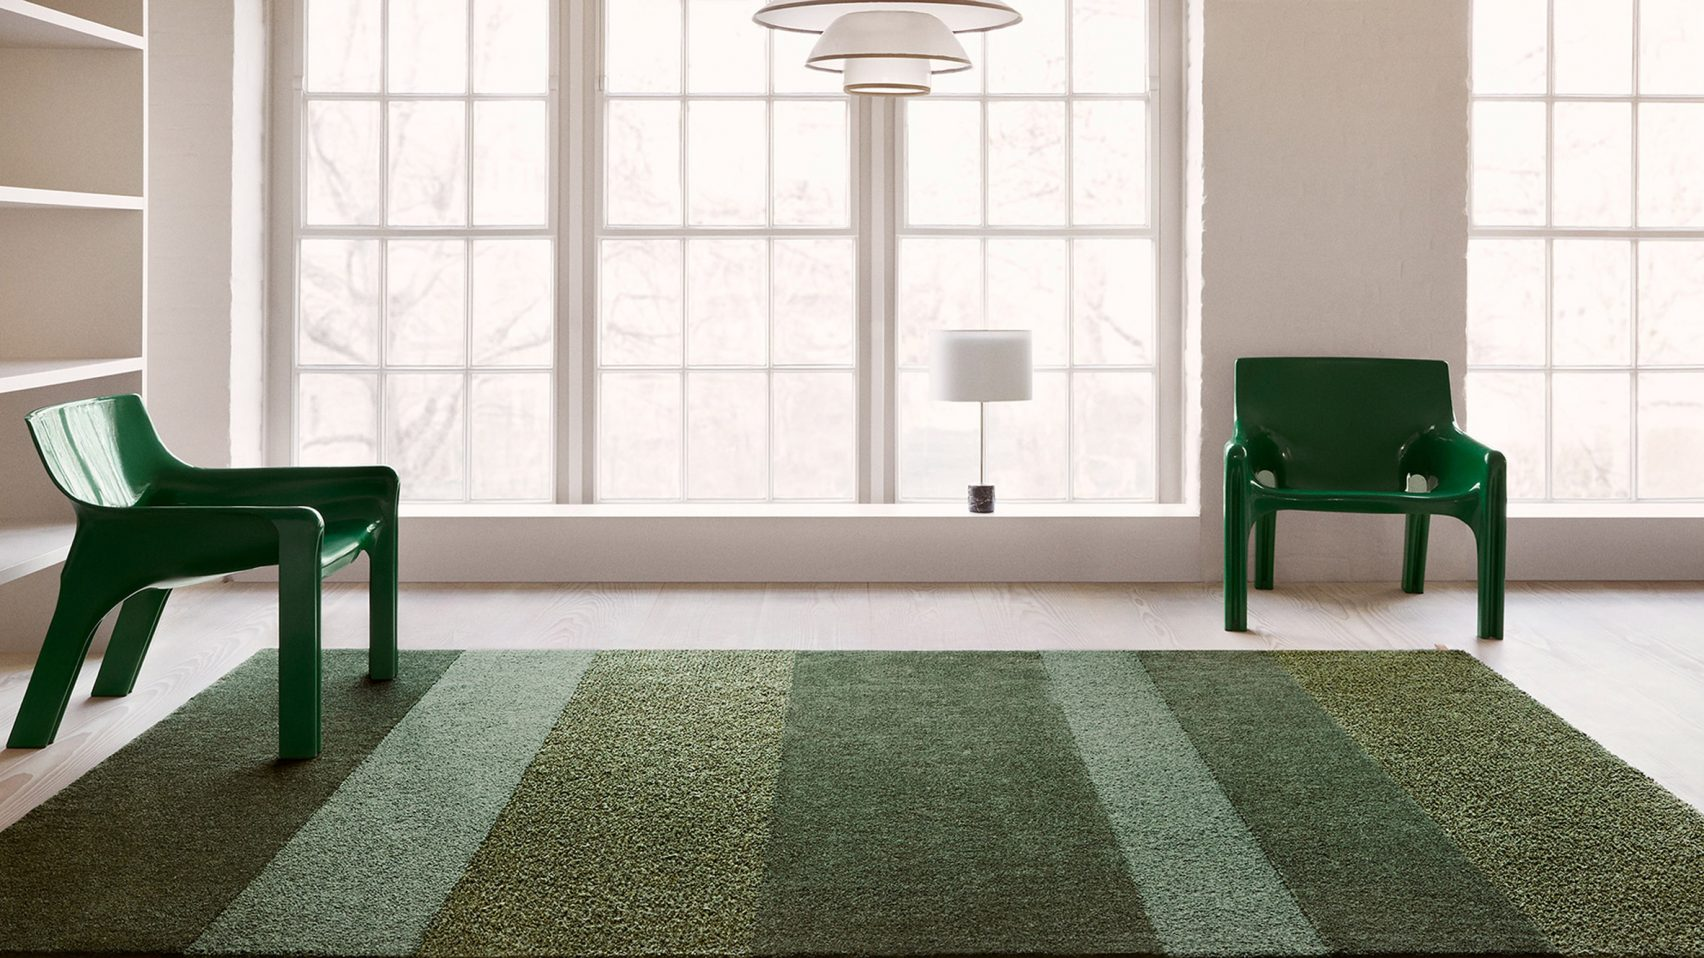 sweden_carpets_by_ilse_crawford_01